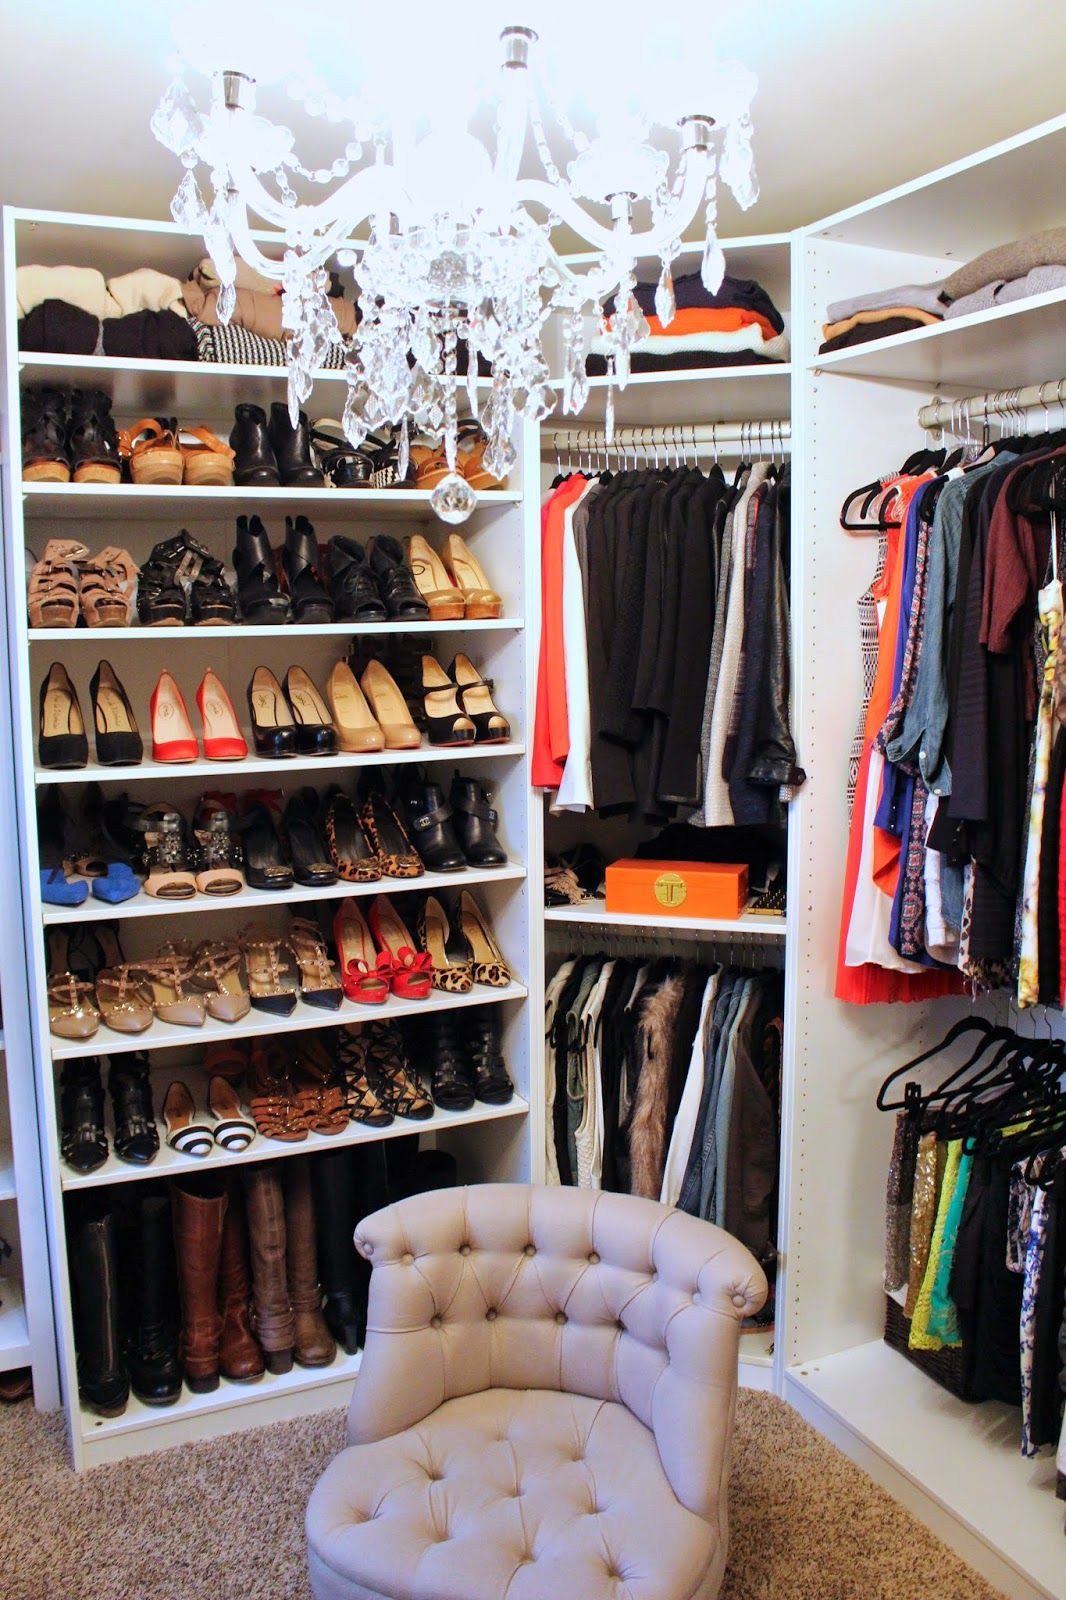 Tiffanyd Updated Closet And Makeup Filming Area Tour Closet Remodel Closet Makeover Closet Inspiration